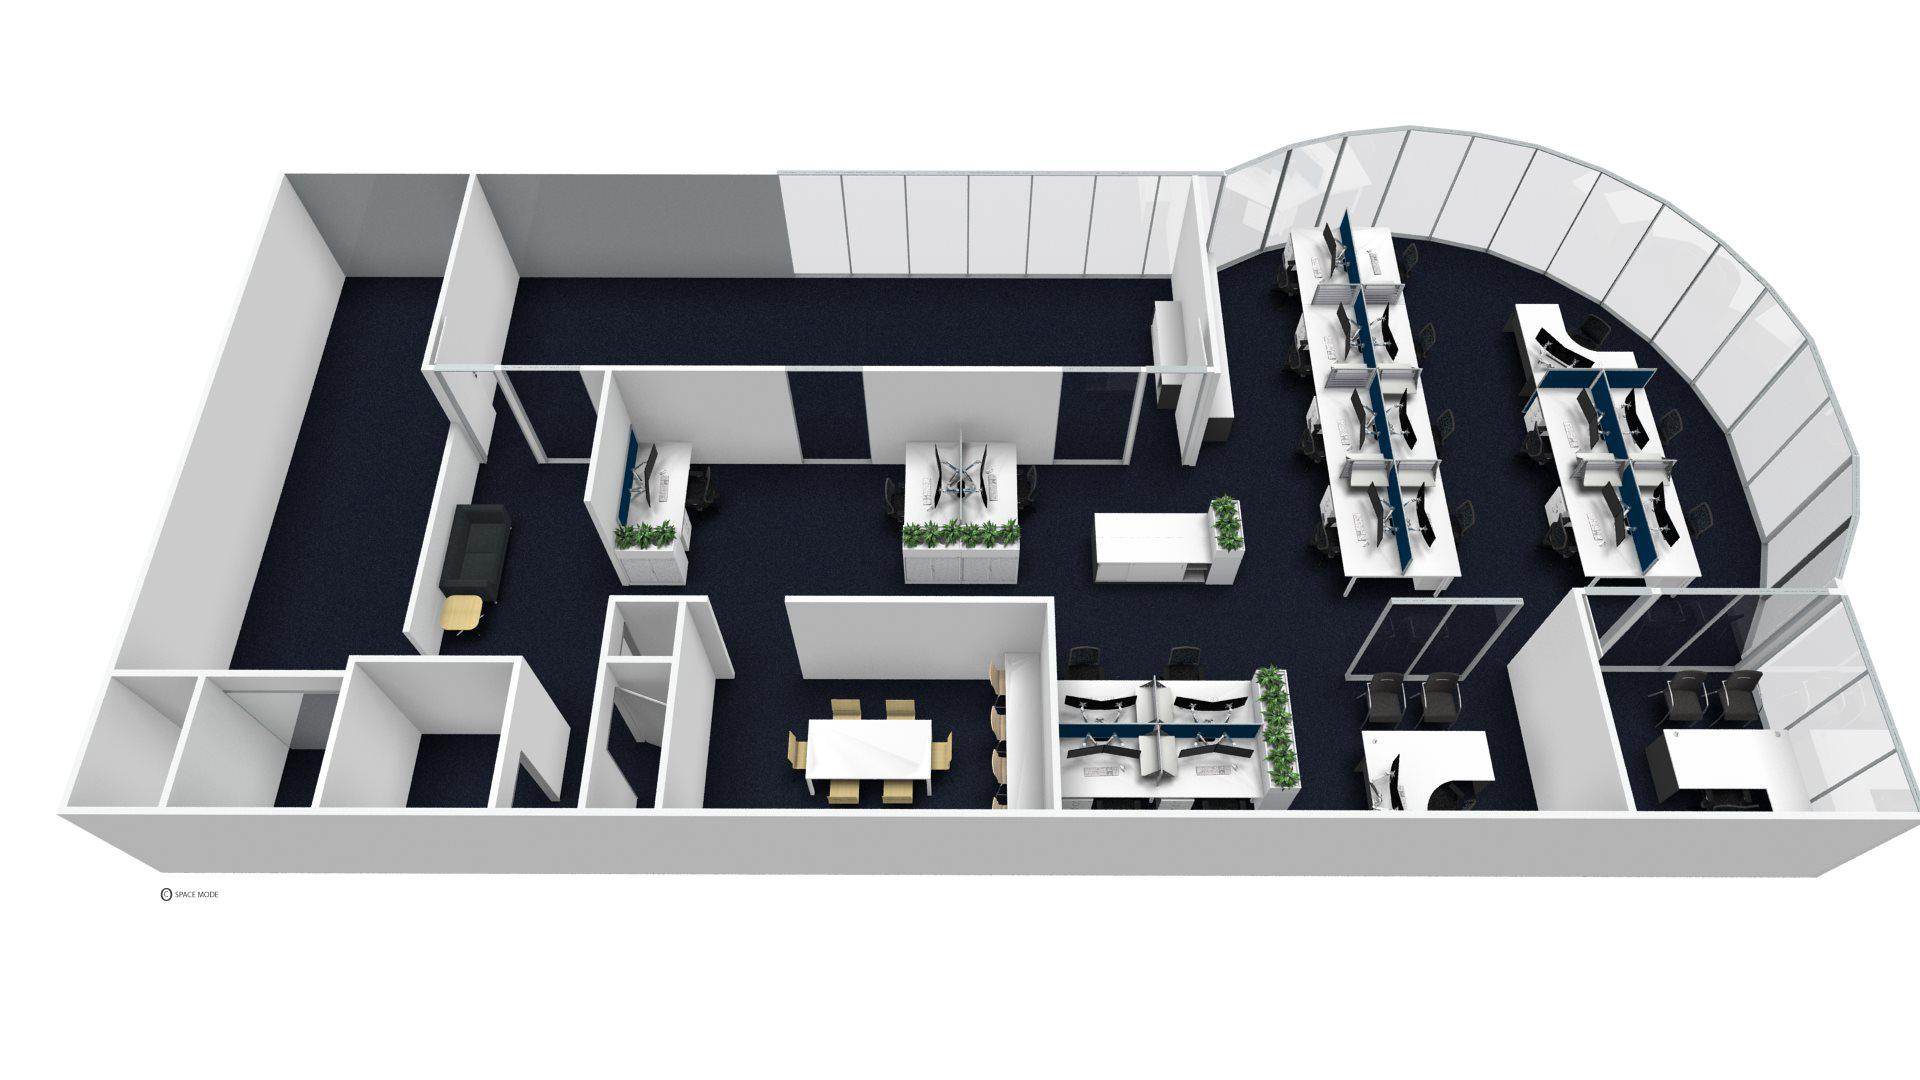 example of a 3D image of office fitout furniture